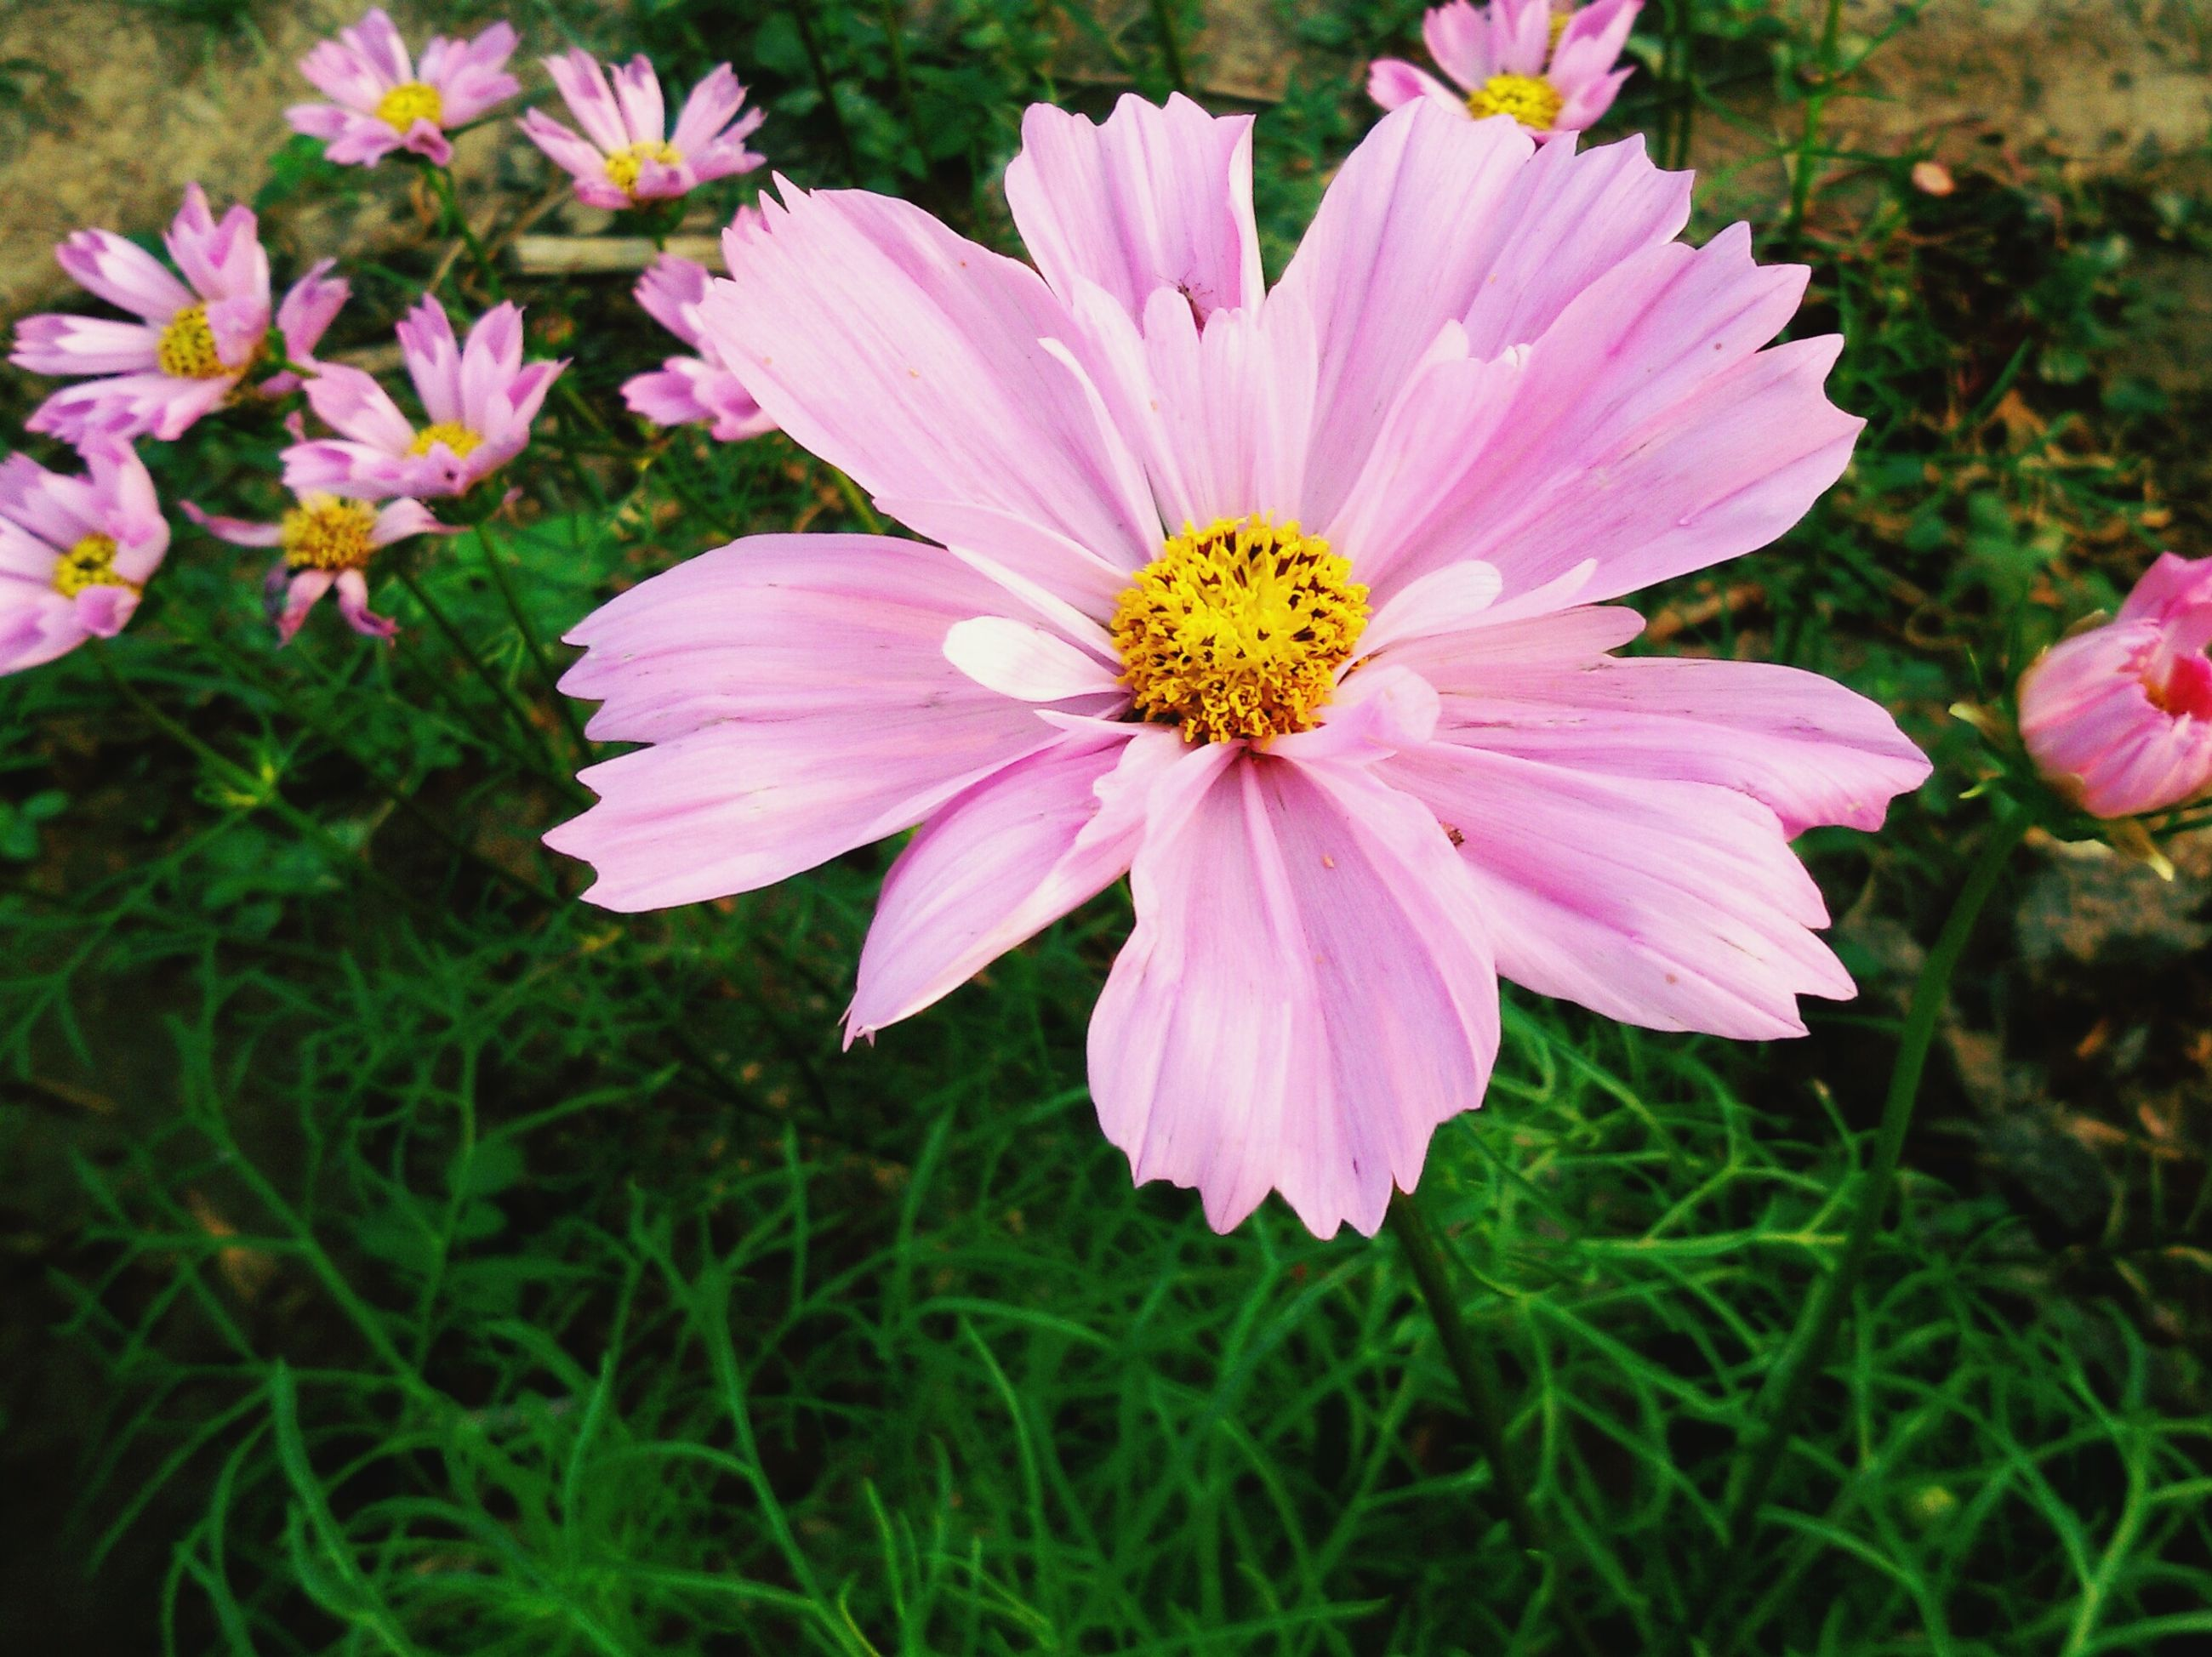 flower, petal, freshness, fragility, flower head, pink color, growth, beauty in nature, blooming, pollen, nature, close-up, plant, focus on foreground, single flower, field, in bloom, pink, outdoors, day